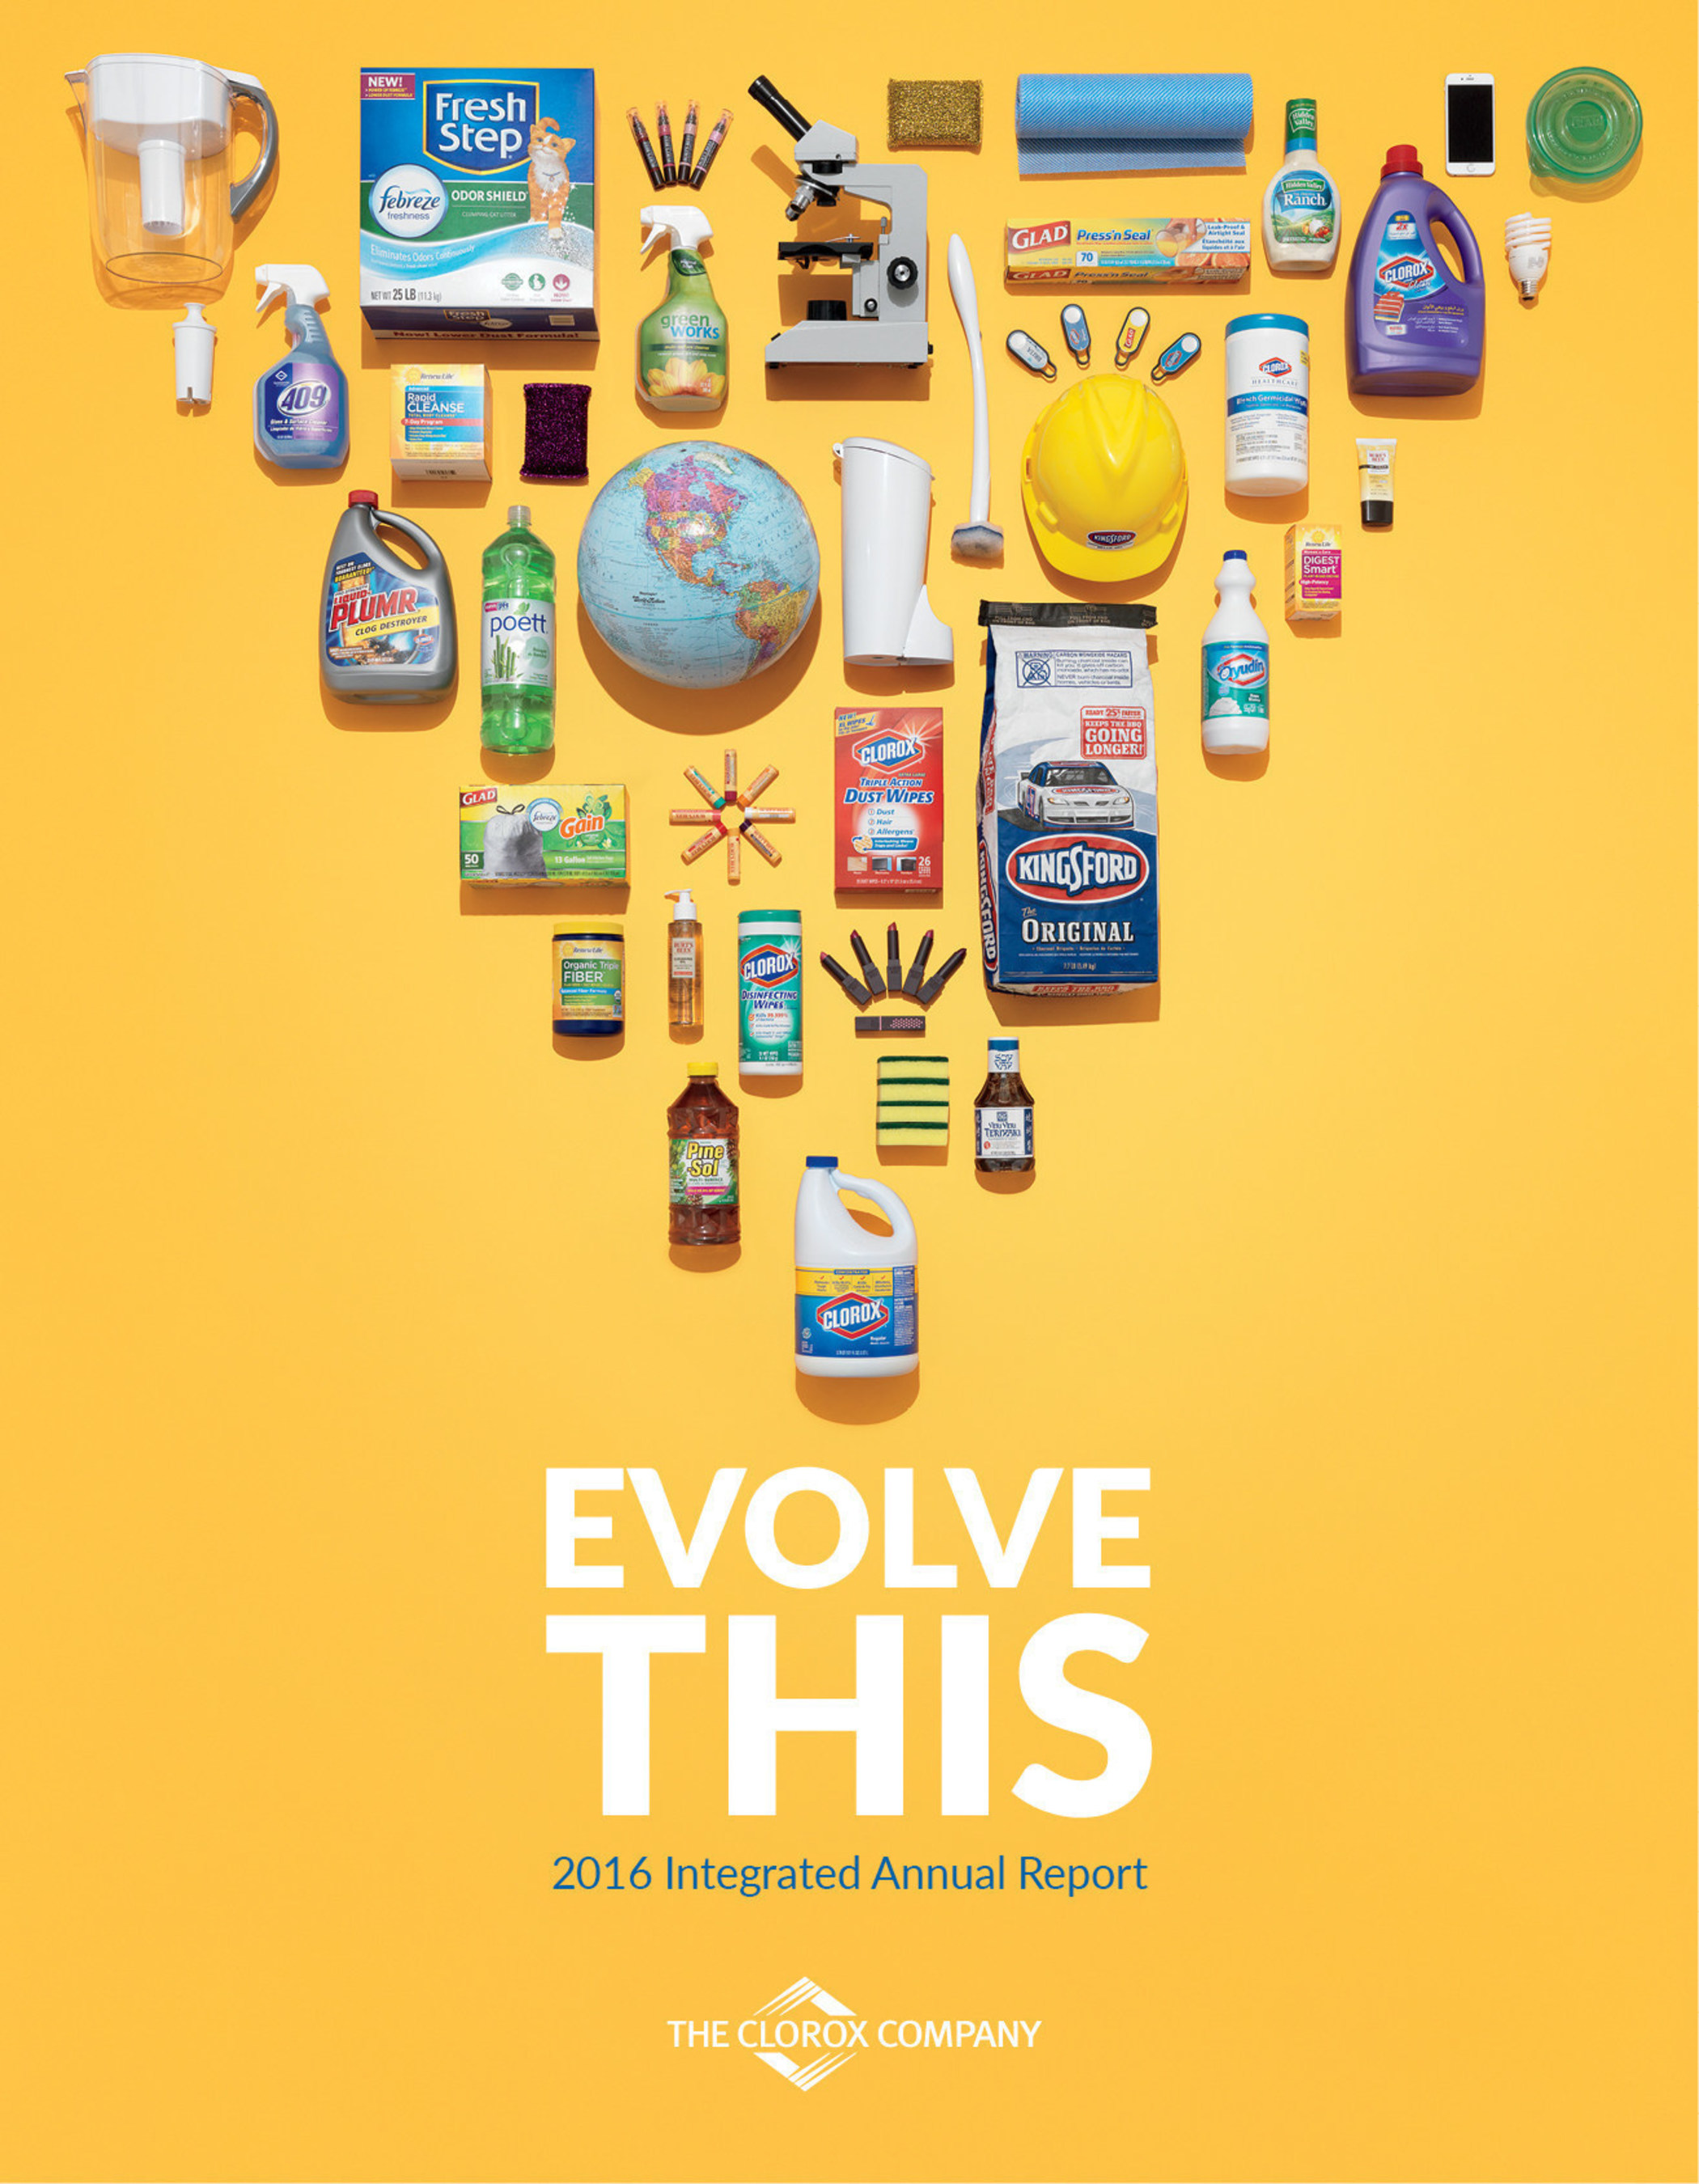 Clorox 2016 integrated annual report highlights progress against 2020 Strategy, more than a century of evolution in health and wellness.